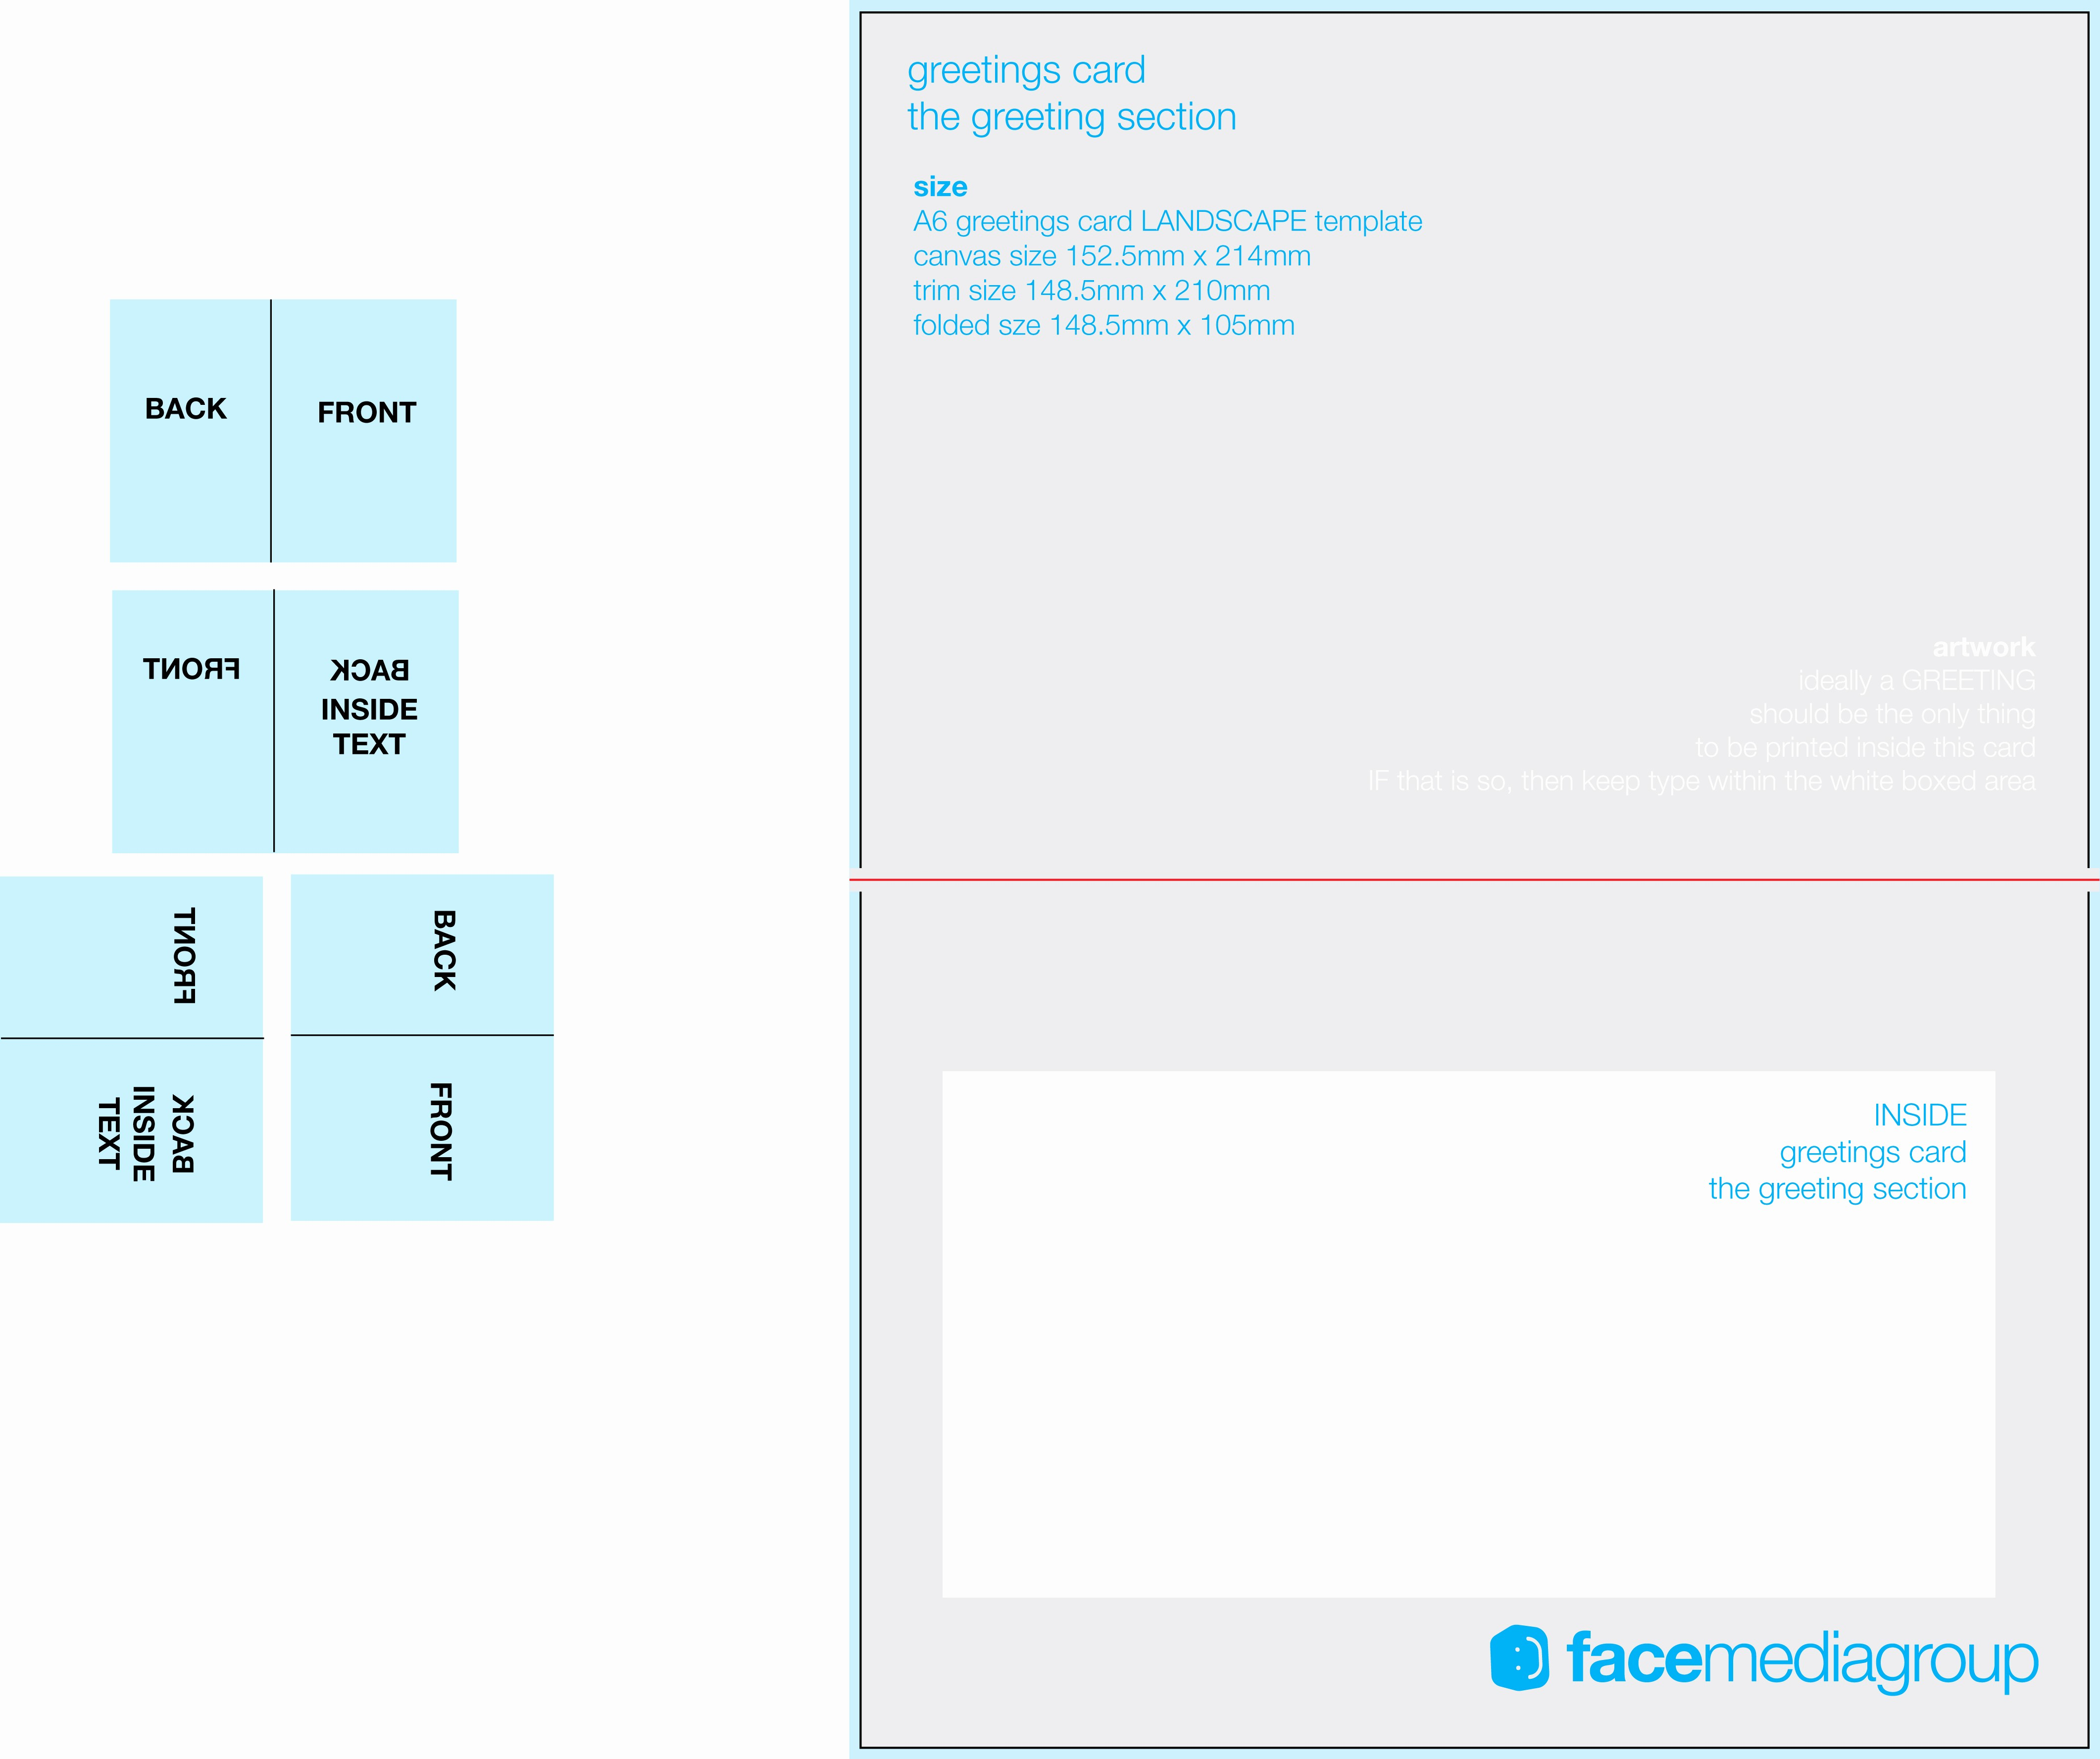 Greeting Cards Templates Free Downloads Awesome Free Blank Greetings Card Artwork Templates for Download